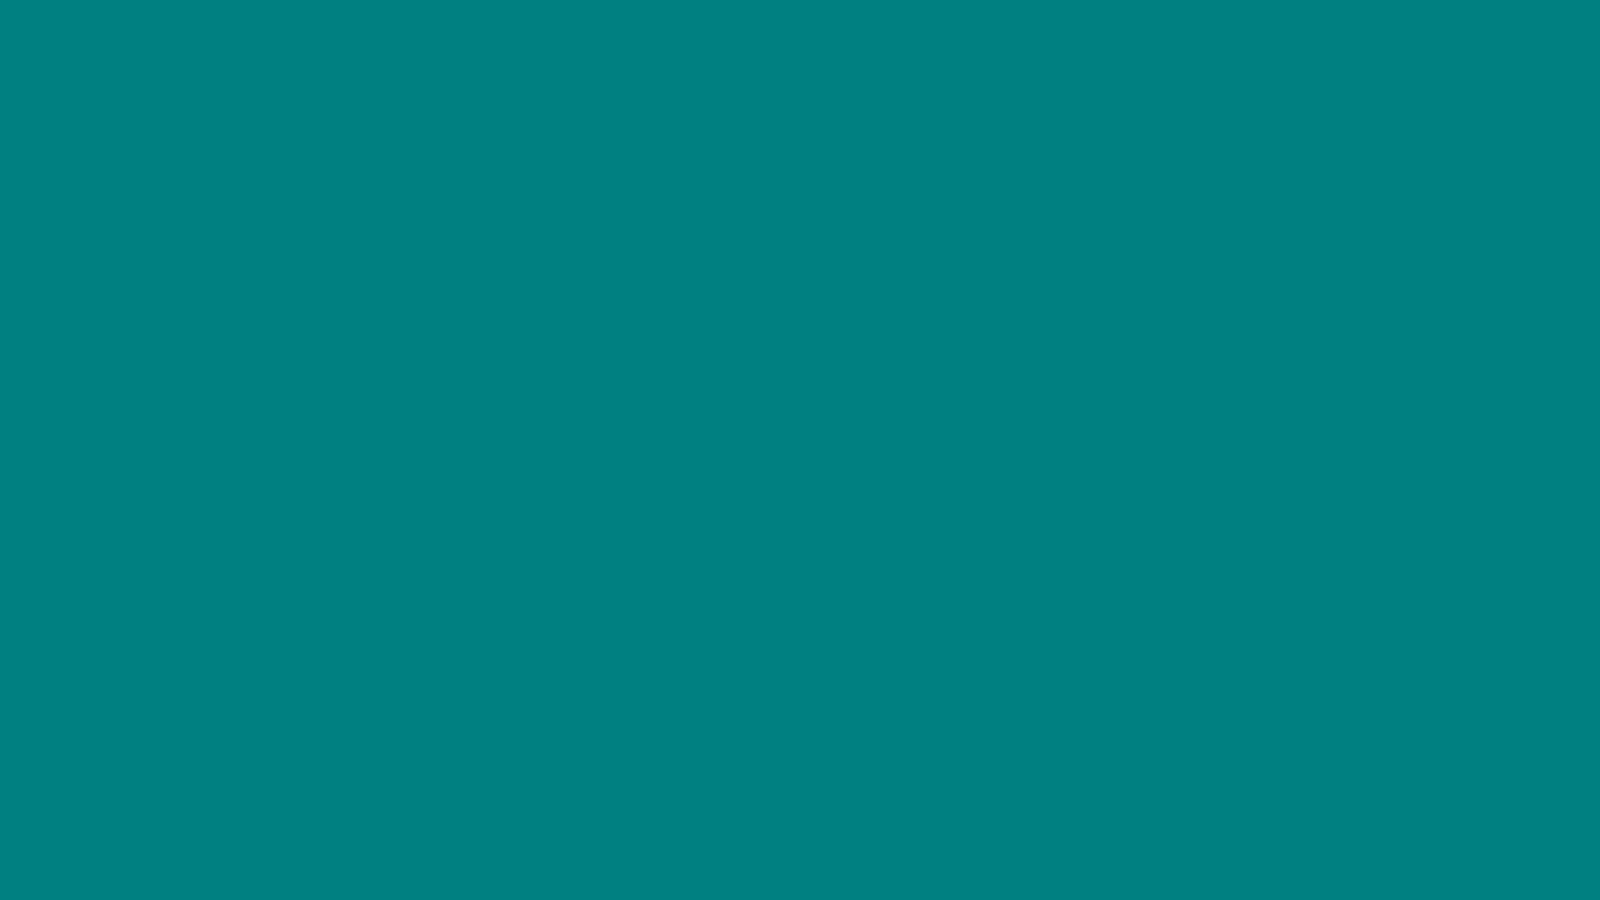 1600x900 Teal Solid Color Background